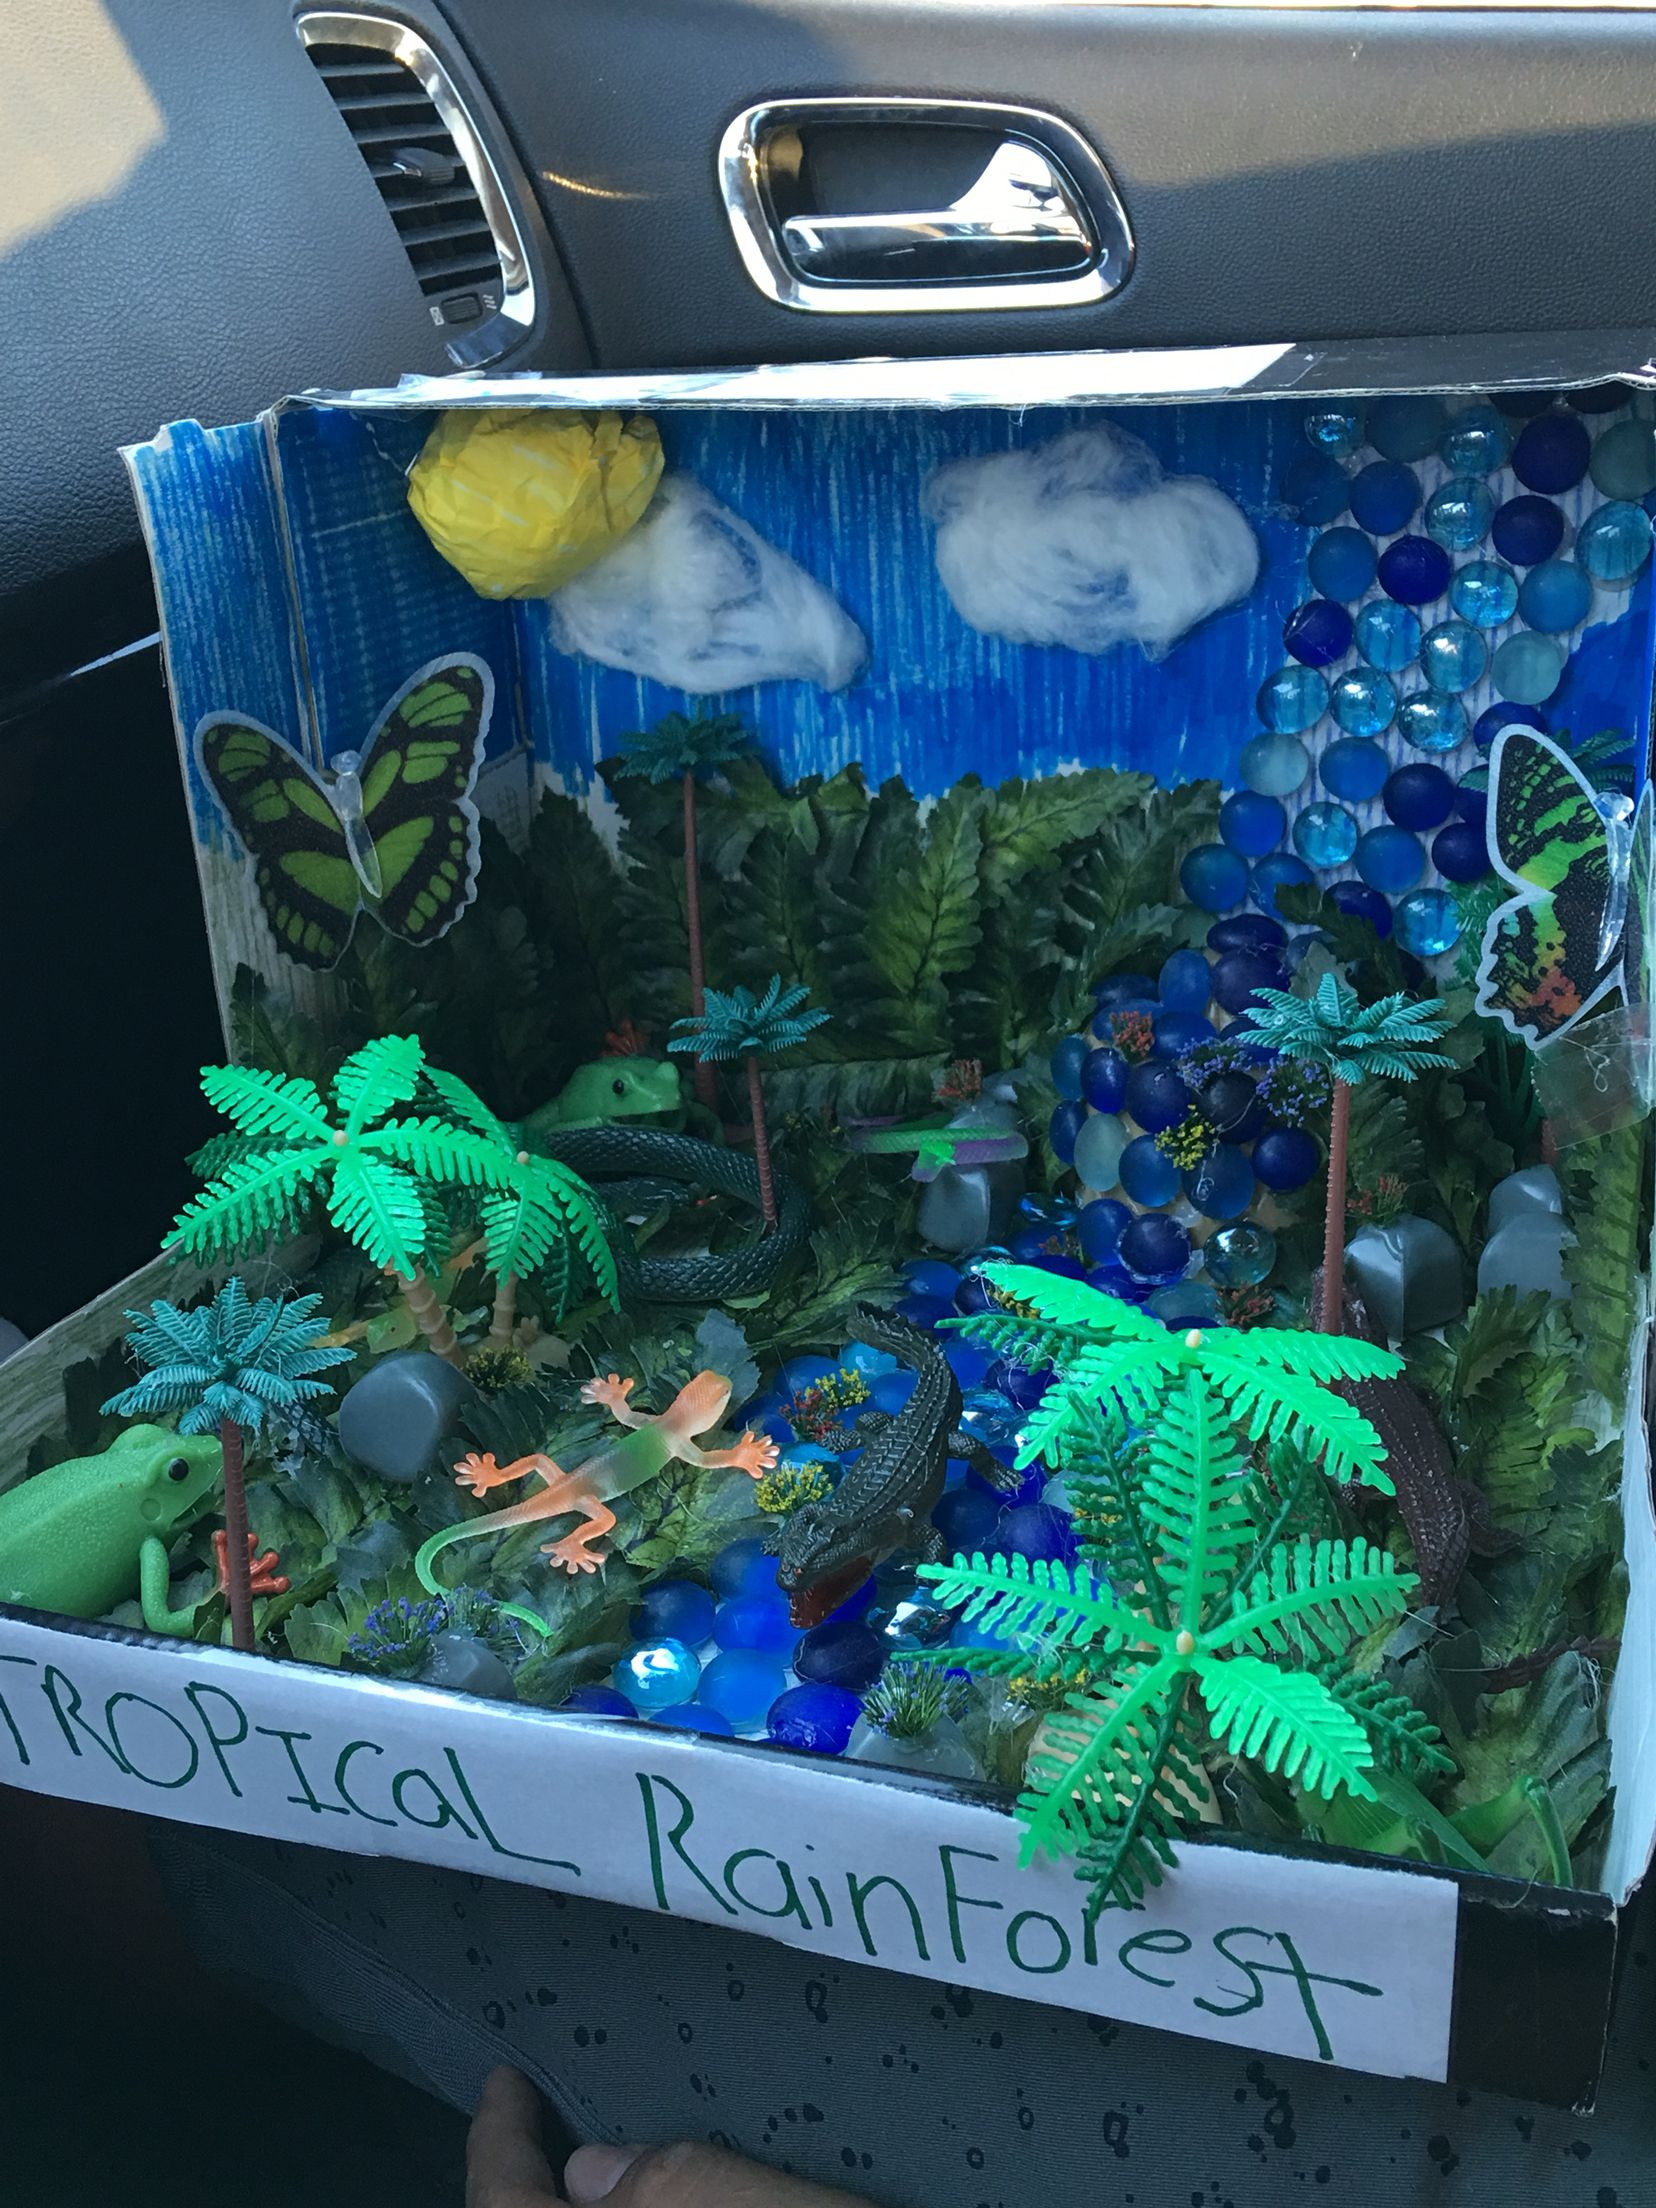 Biome Tropical Rainforest Project